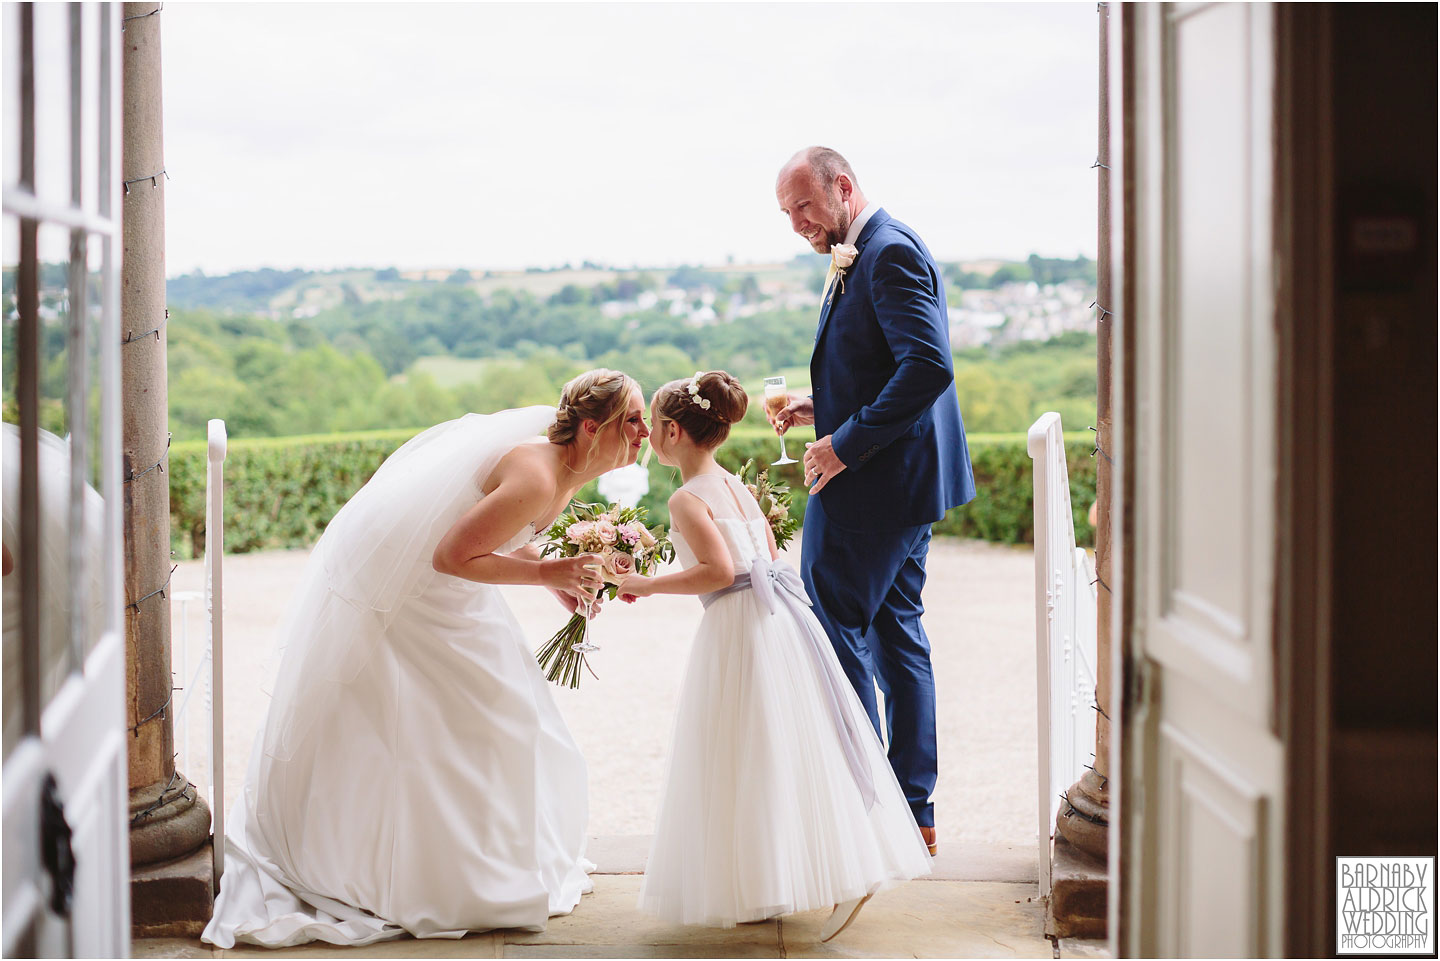 Wood Hall Hotel Wetherby family wedding moment, Wood Hall Wedding Photos, Wood Hall Wedding Photographer